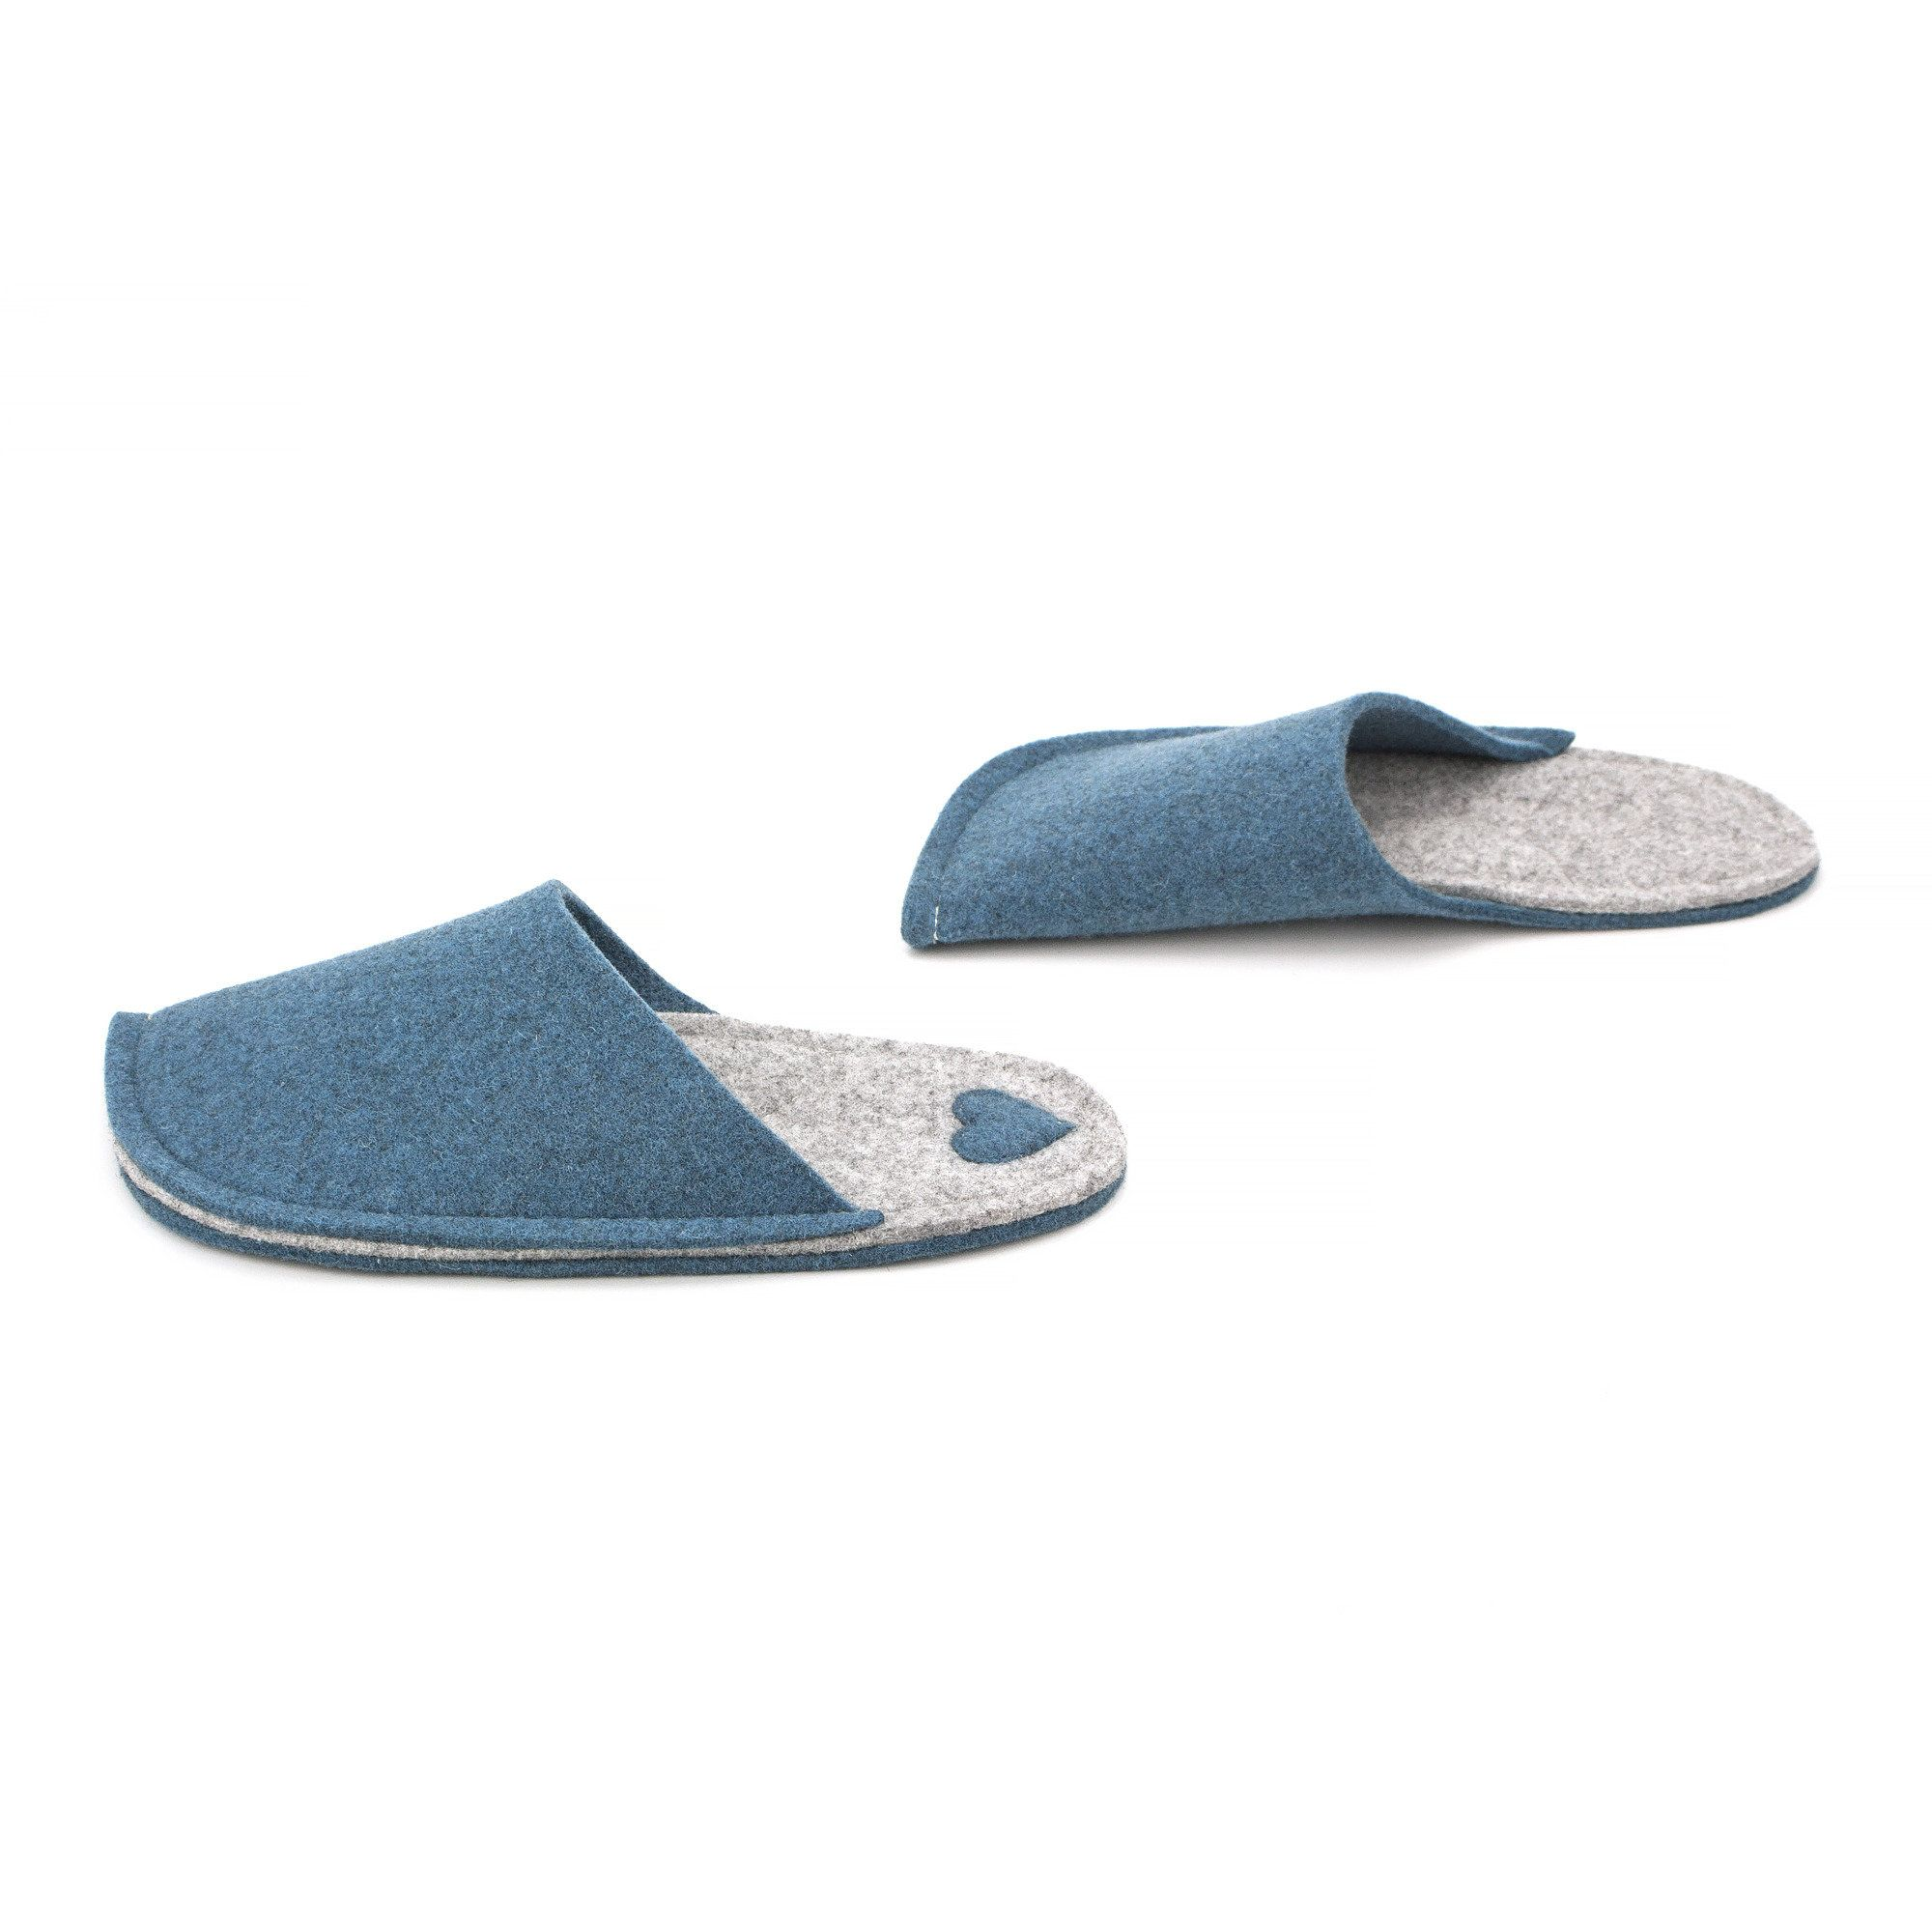 Blue Decor Home Decor Slippers Home Slippers Azure Blue Bluedecor Homedecor Homedecorideasdiy Homedecorideas Hom Blue Slippers Azure Blue Slippers